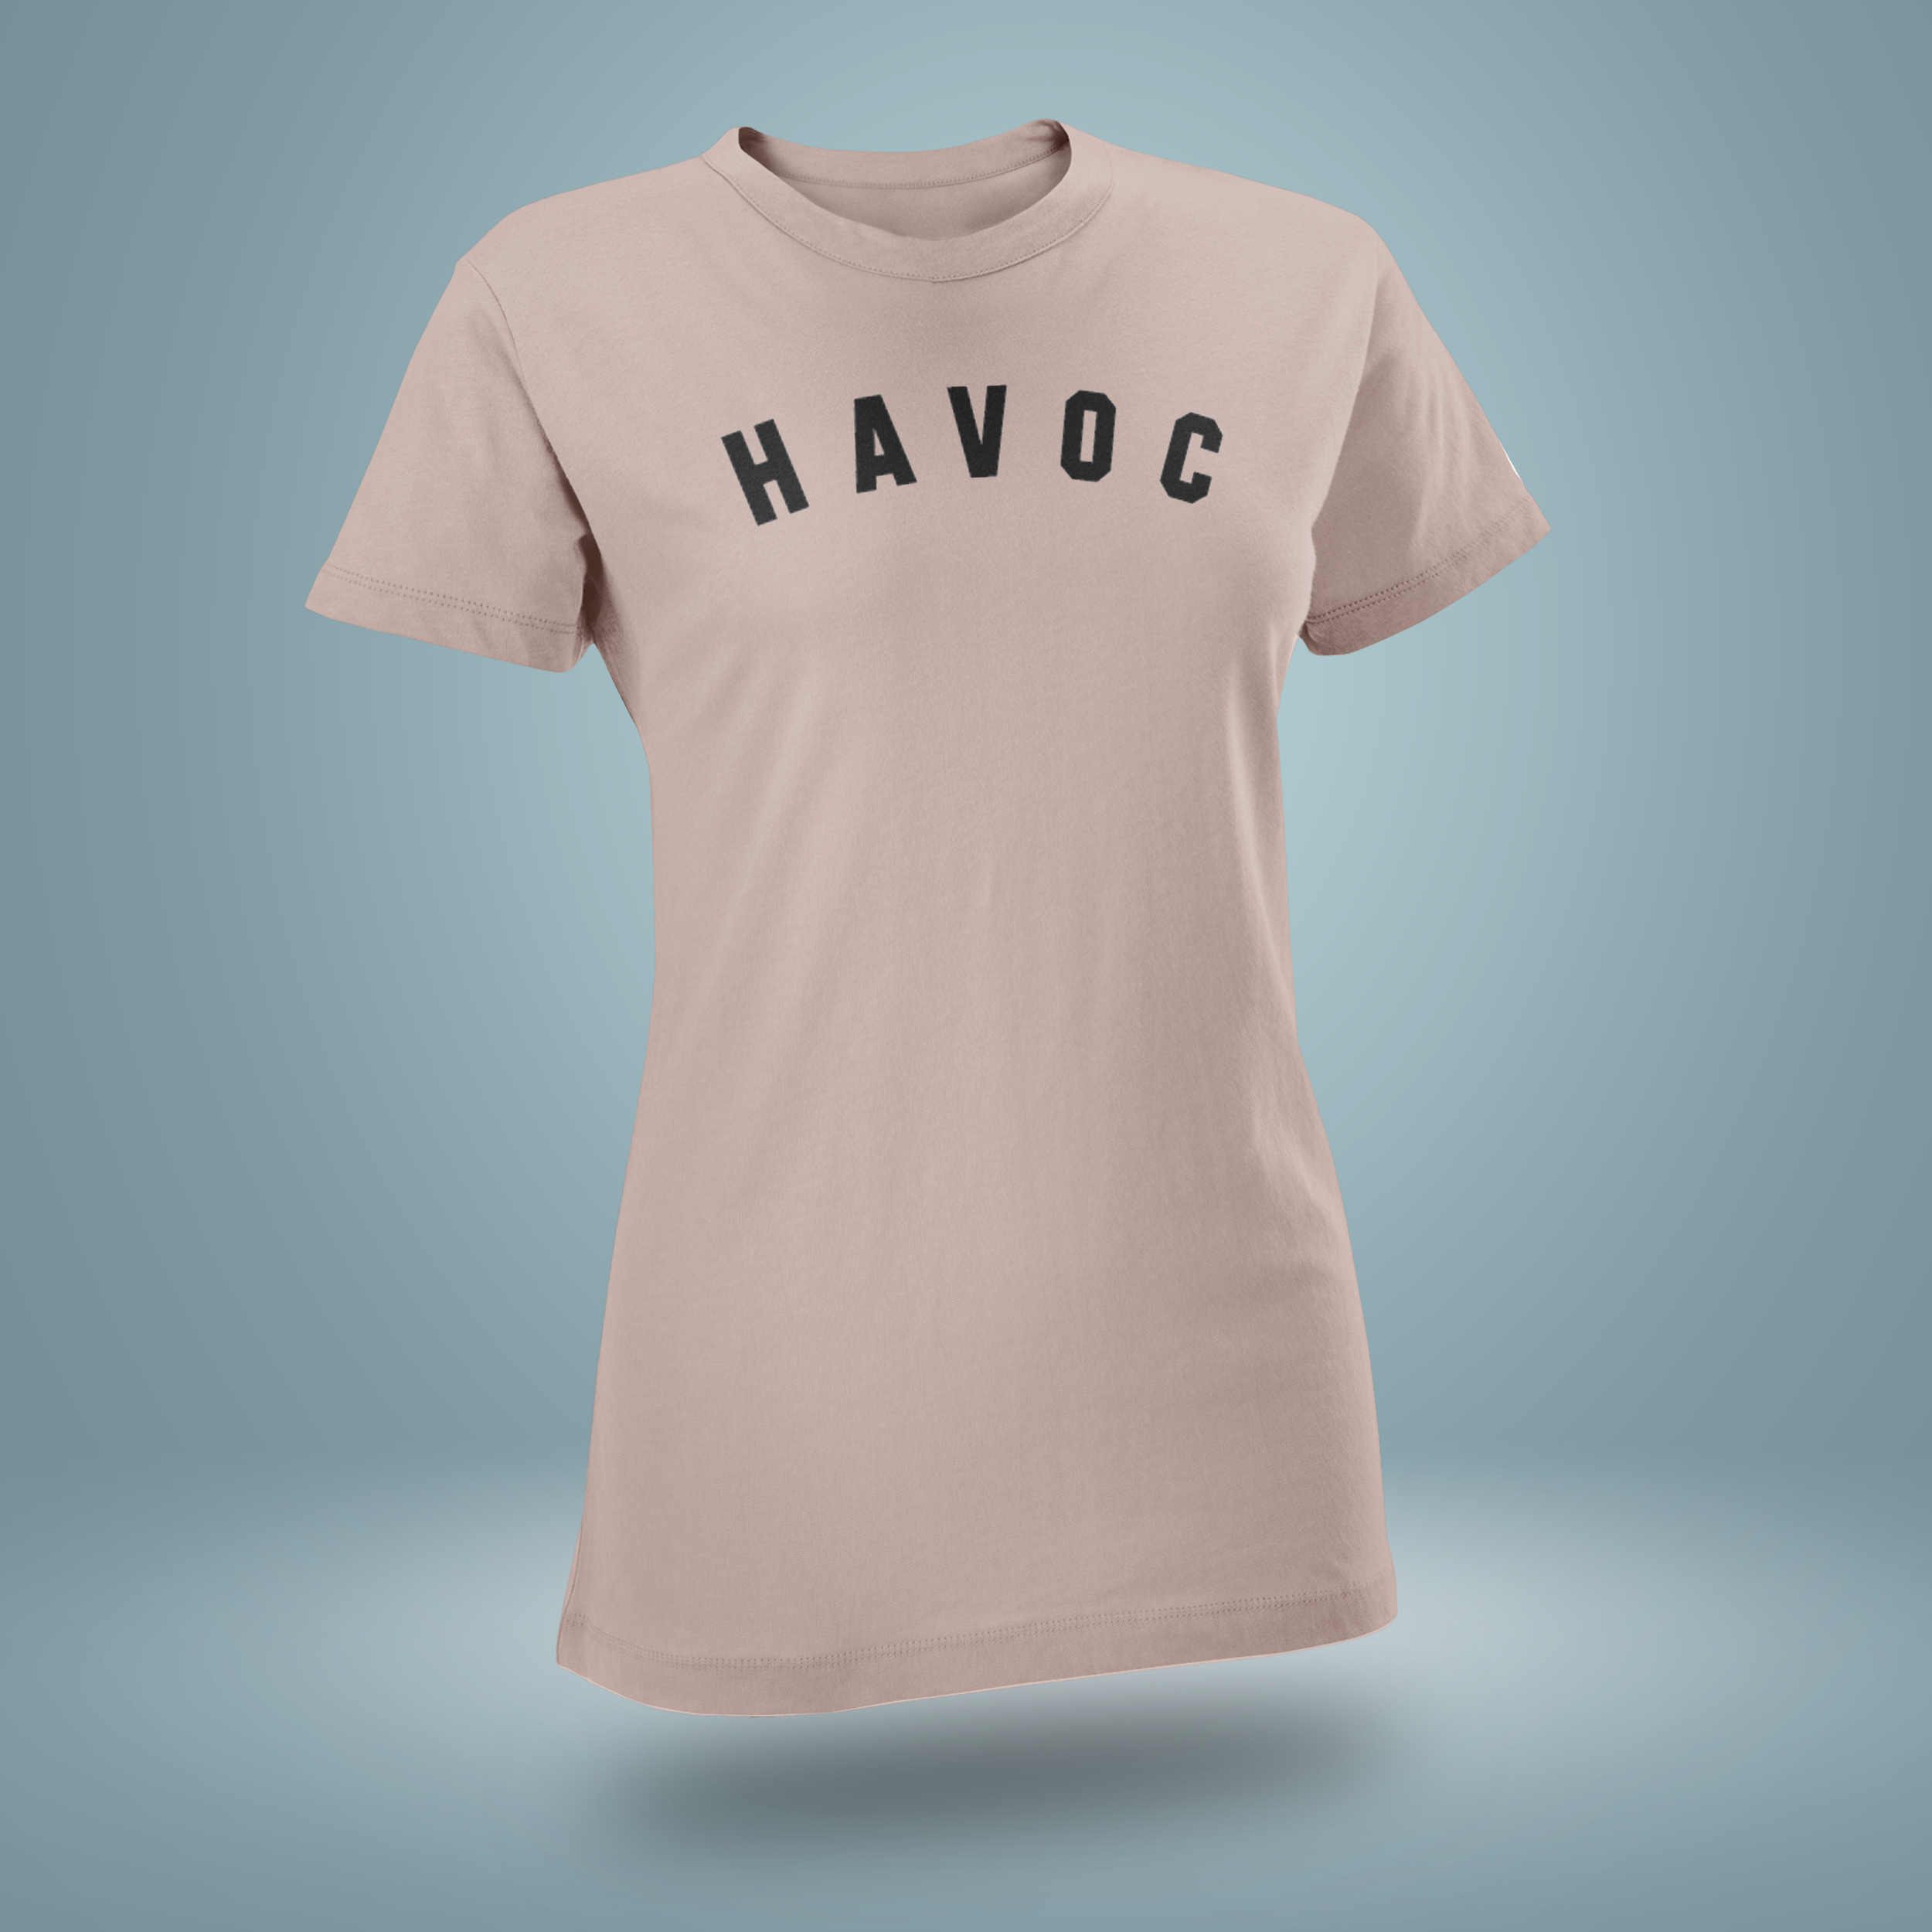 HAVOC Ladies' T-Shirt